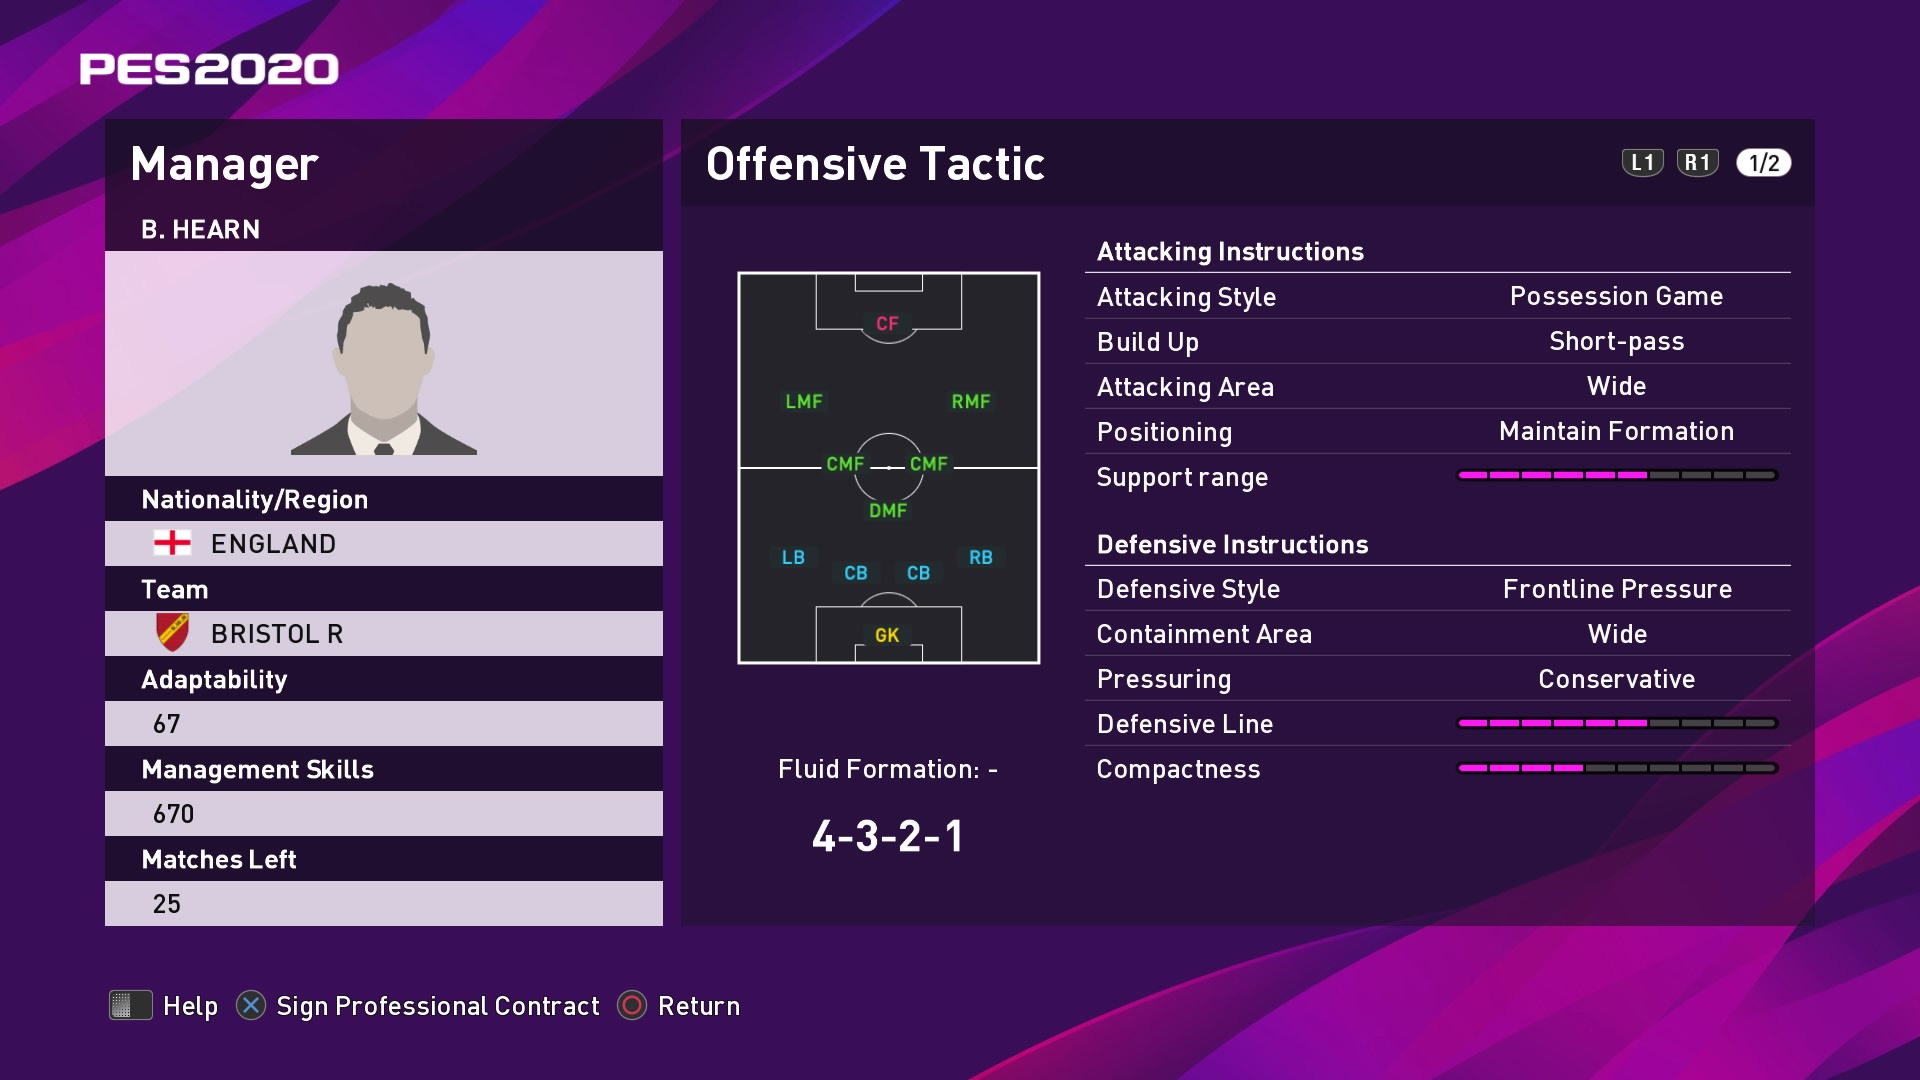 B. Hearn (Lee Johnson) Offensive Tactic in PES 2020 myClub